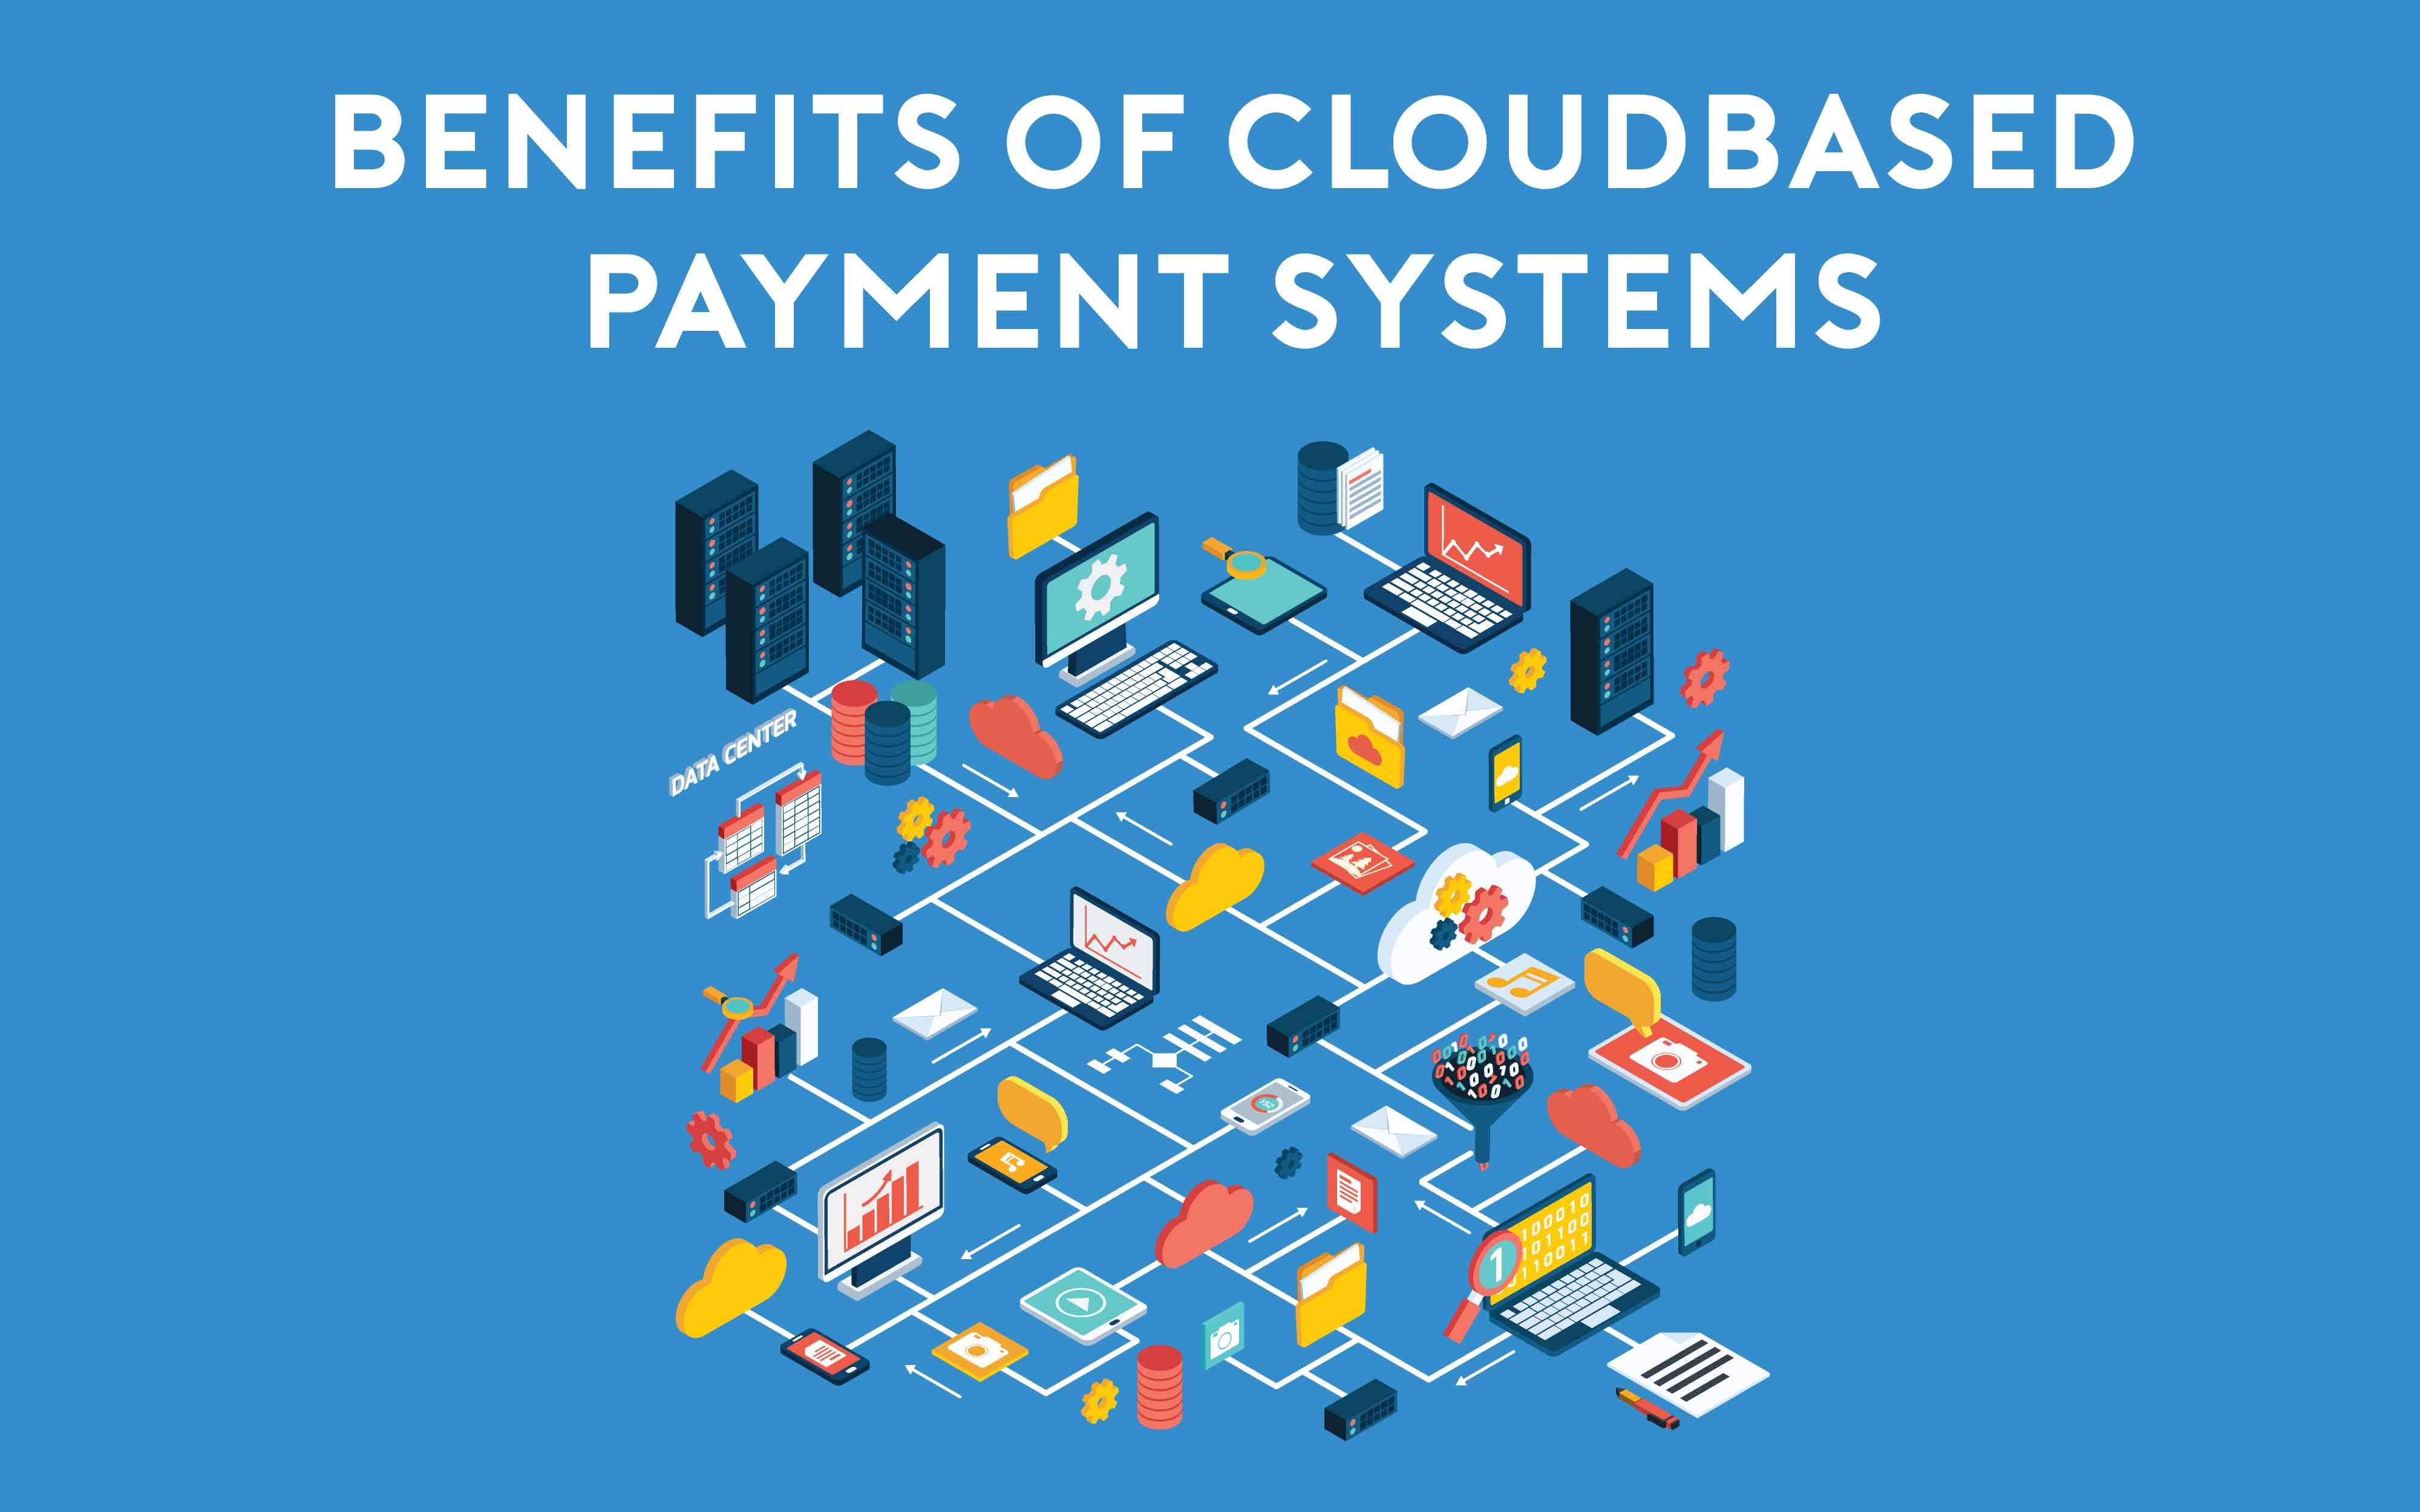 What are the benefits of cloud-based payment systems